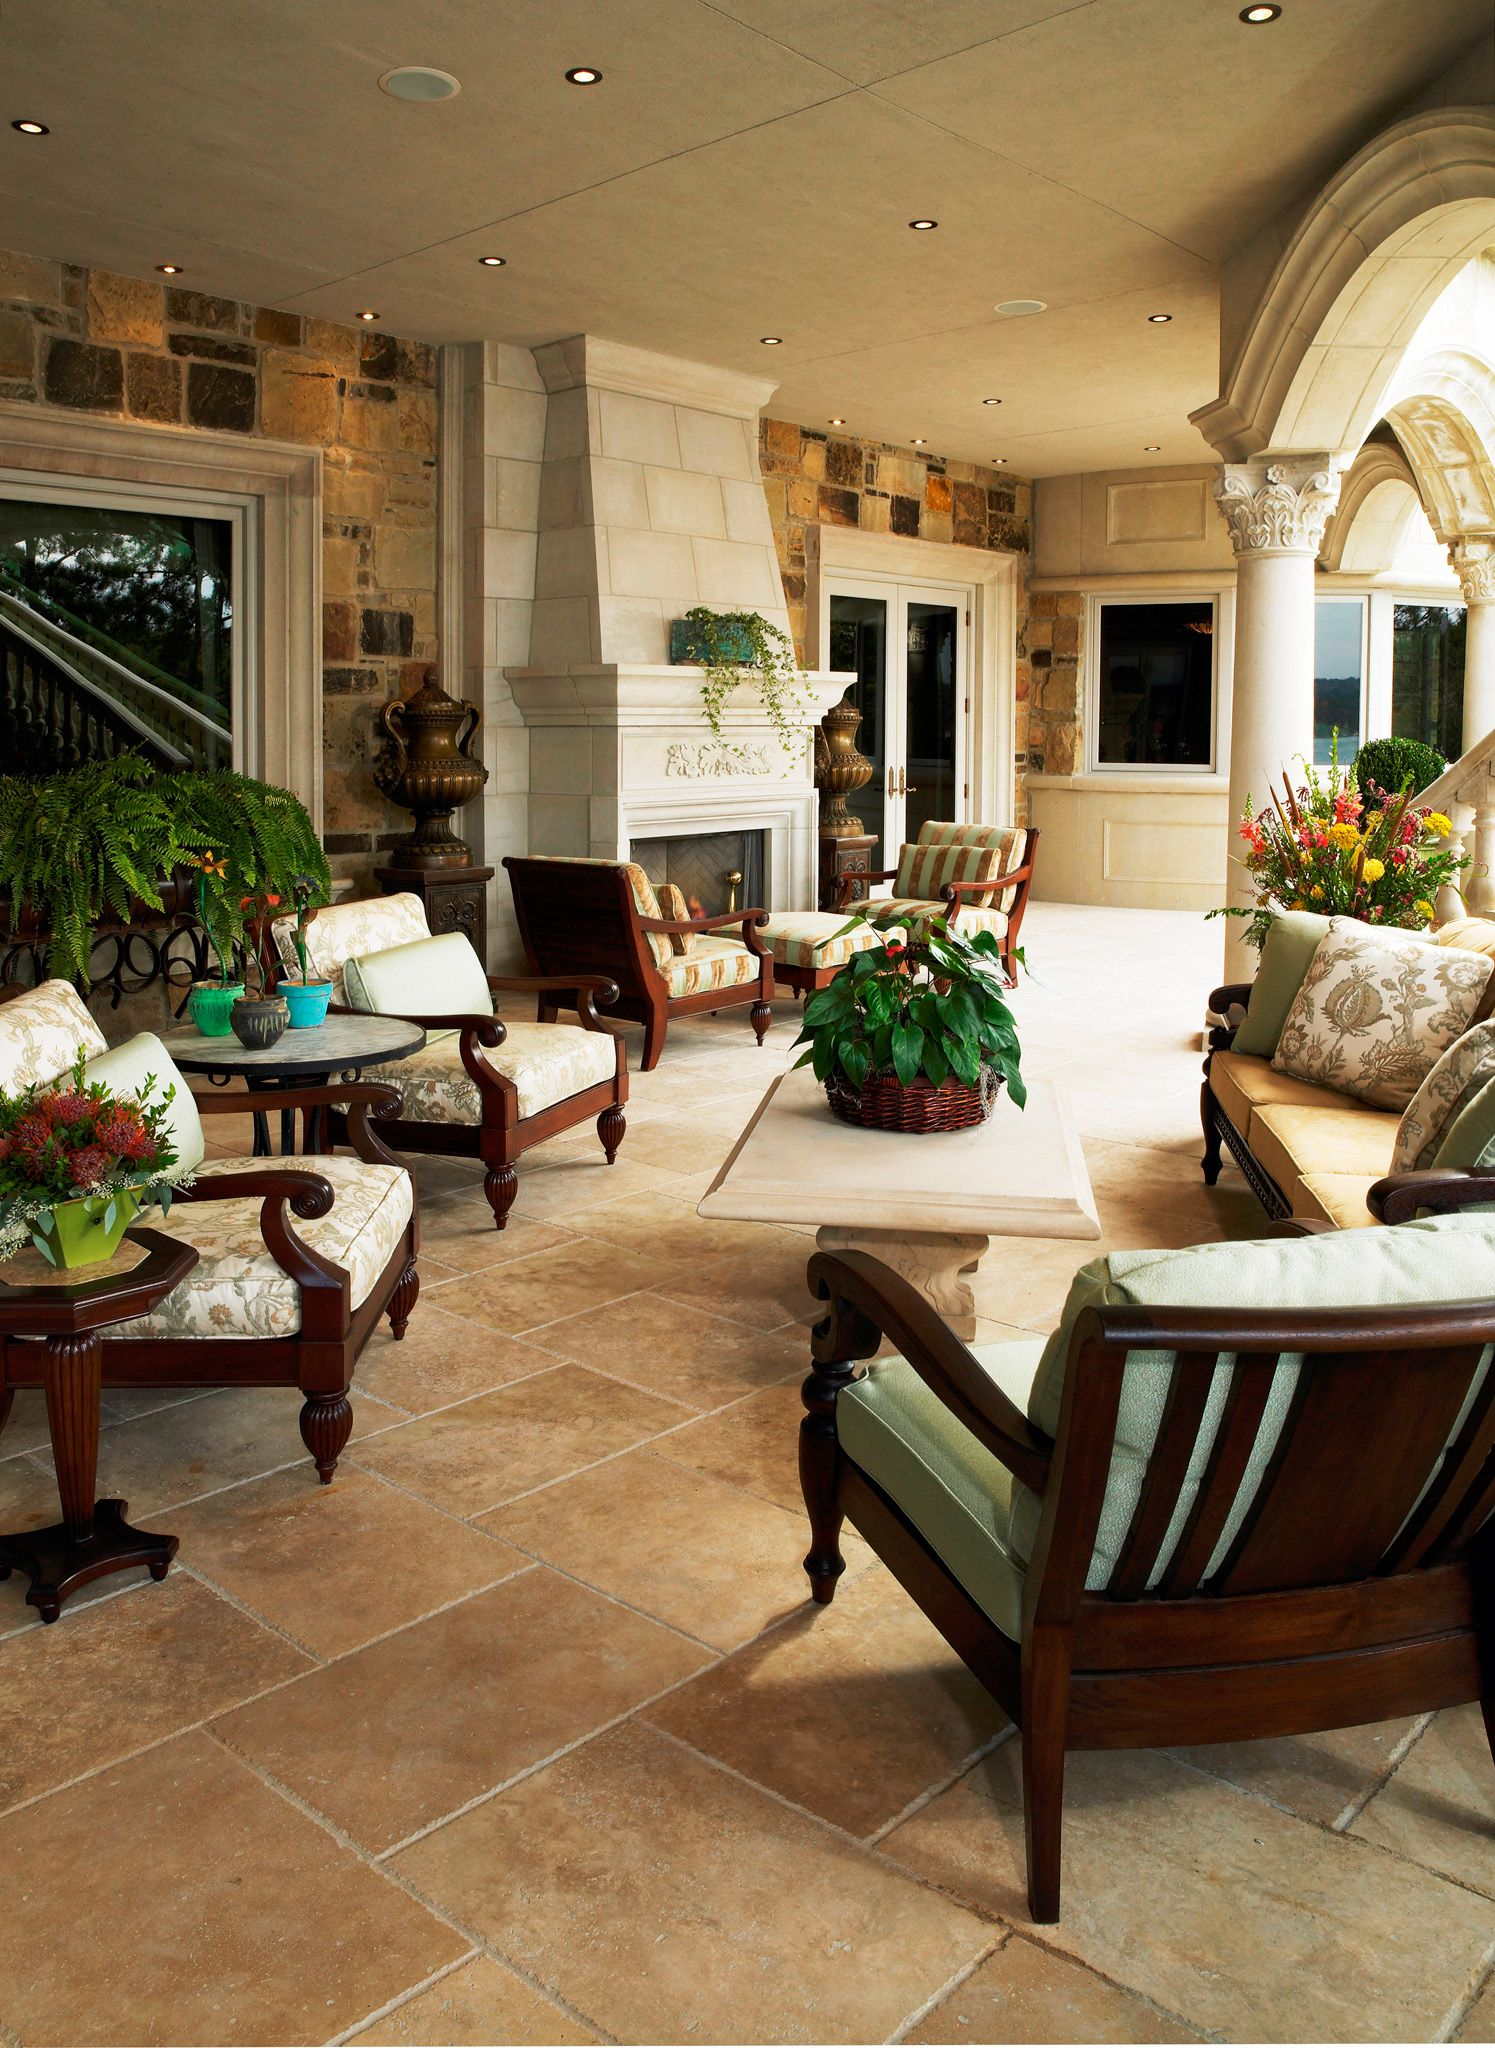 Colonial Elegant Living Room Furniture: I've Always Loved The Idea Of A Lanai With A Fireplace